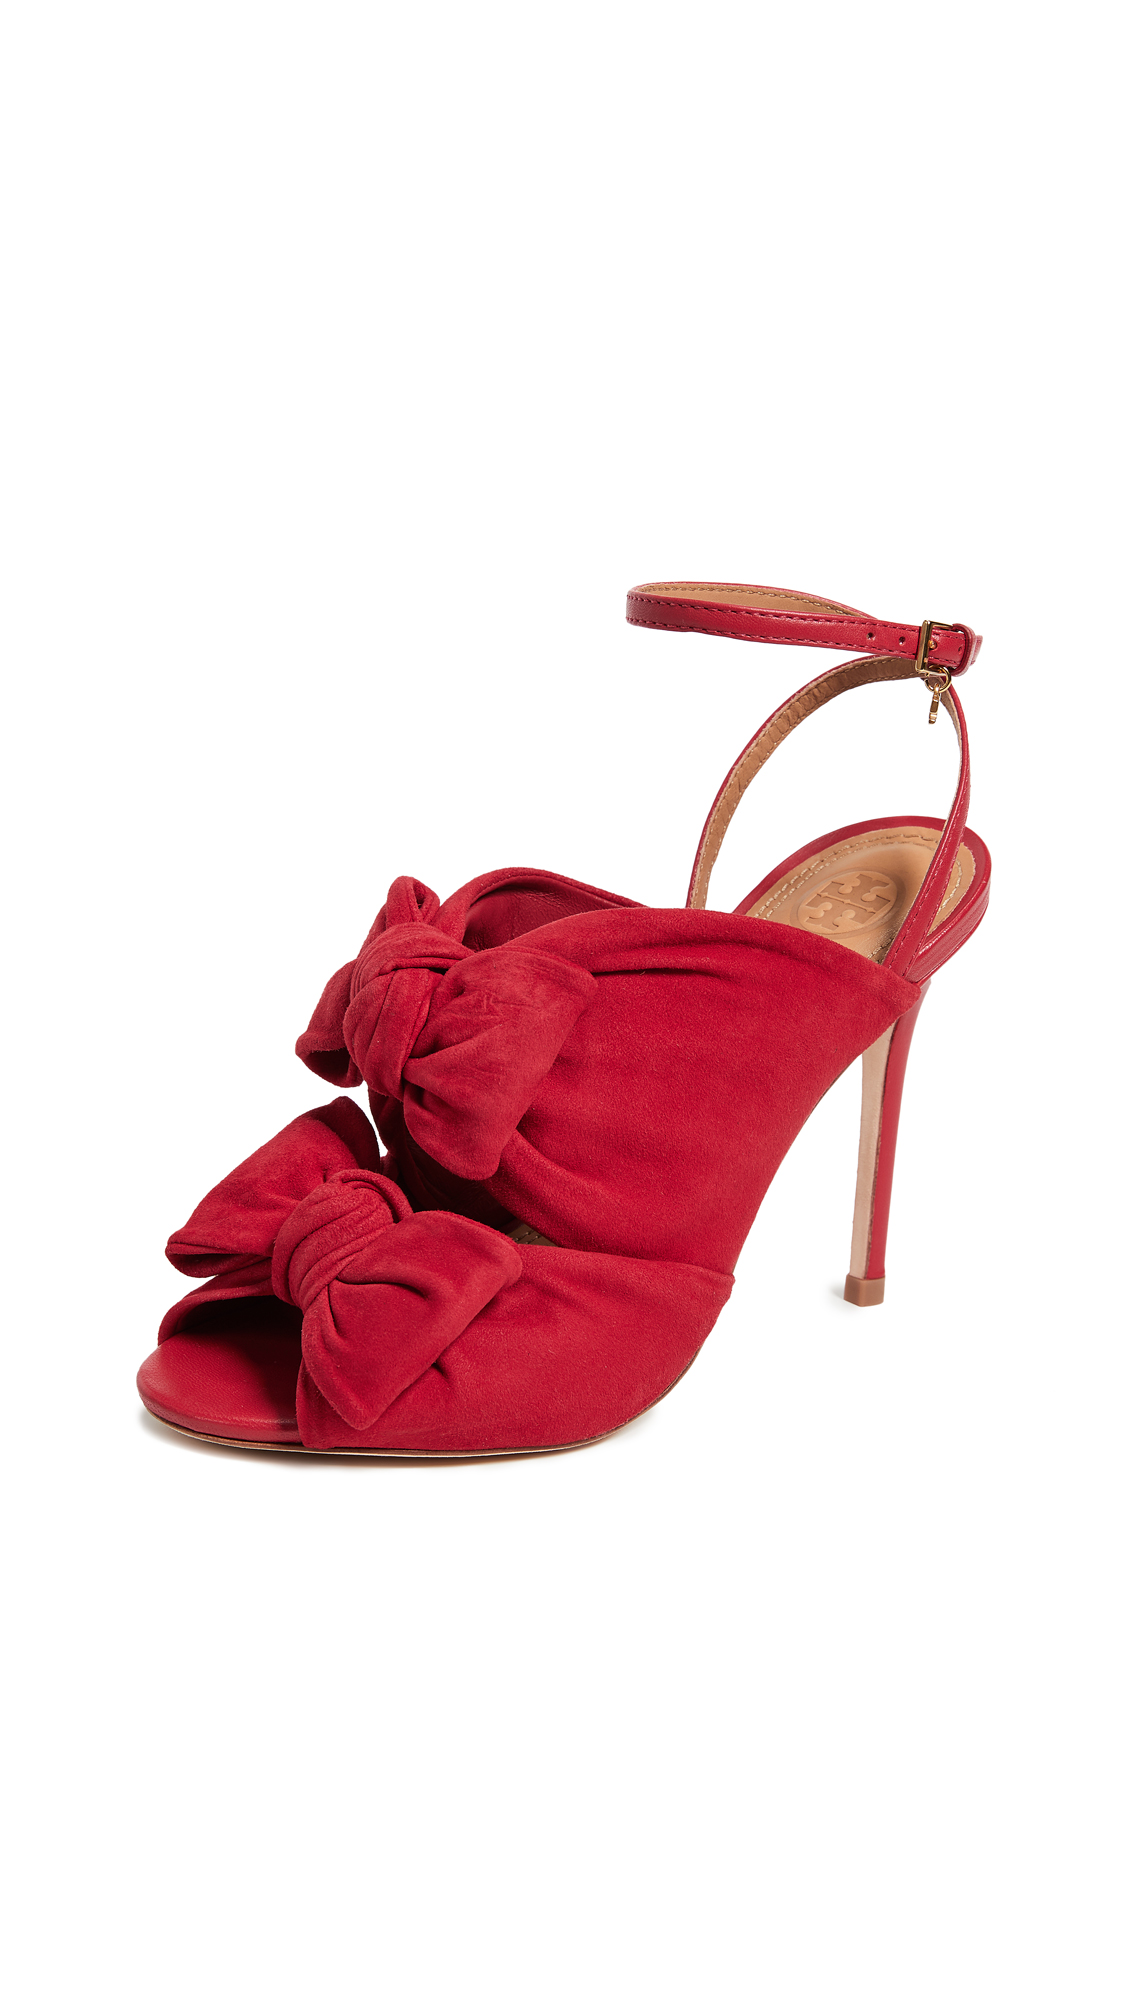 Tory Burch Eleanor 105mm Sandals - Brilliant Red